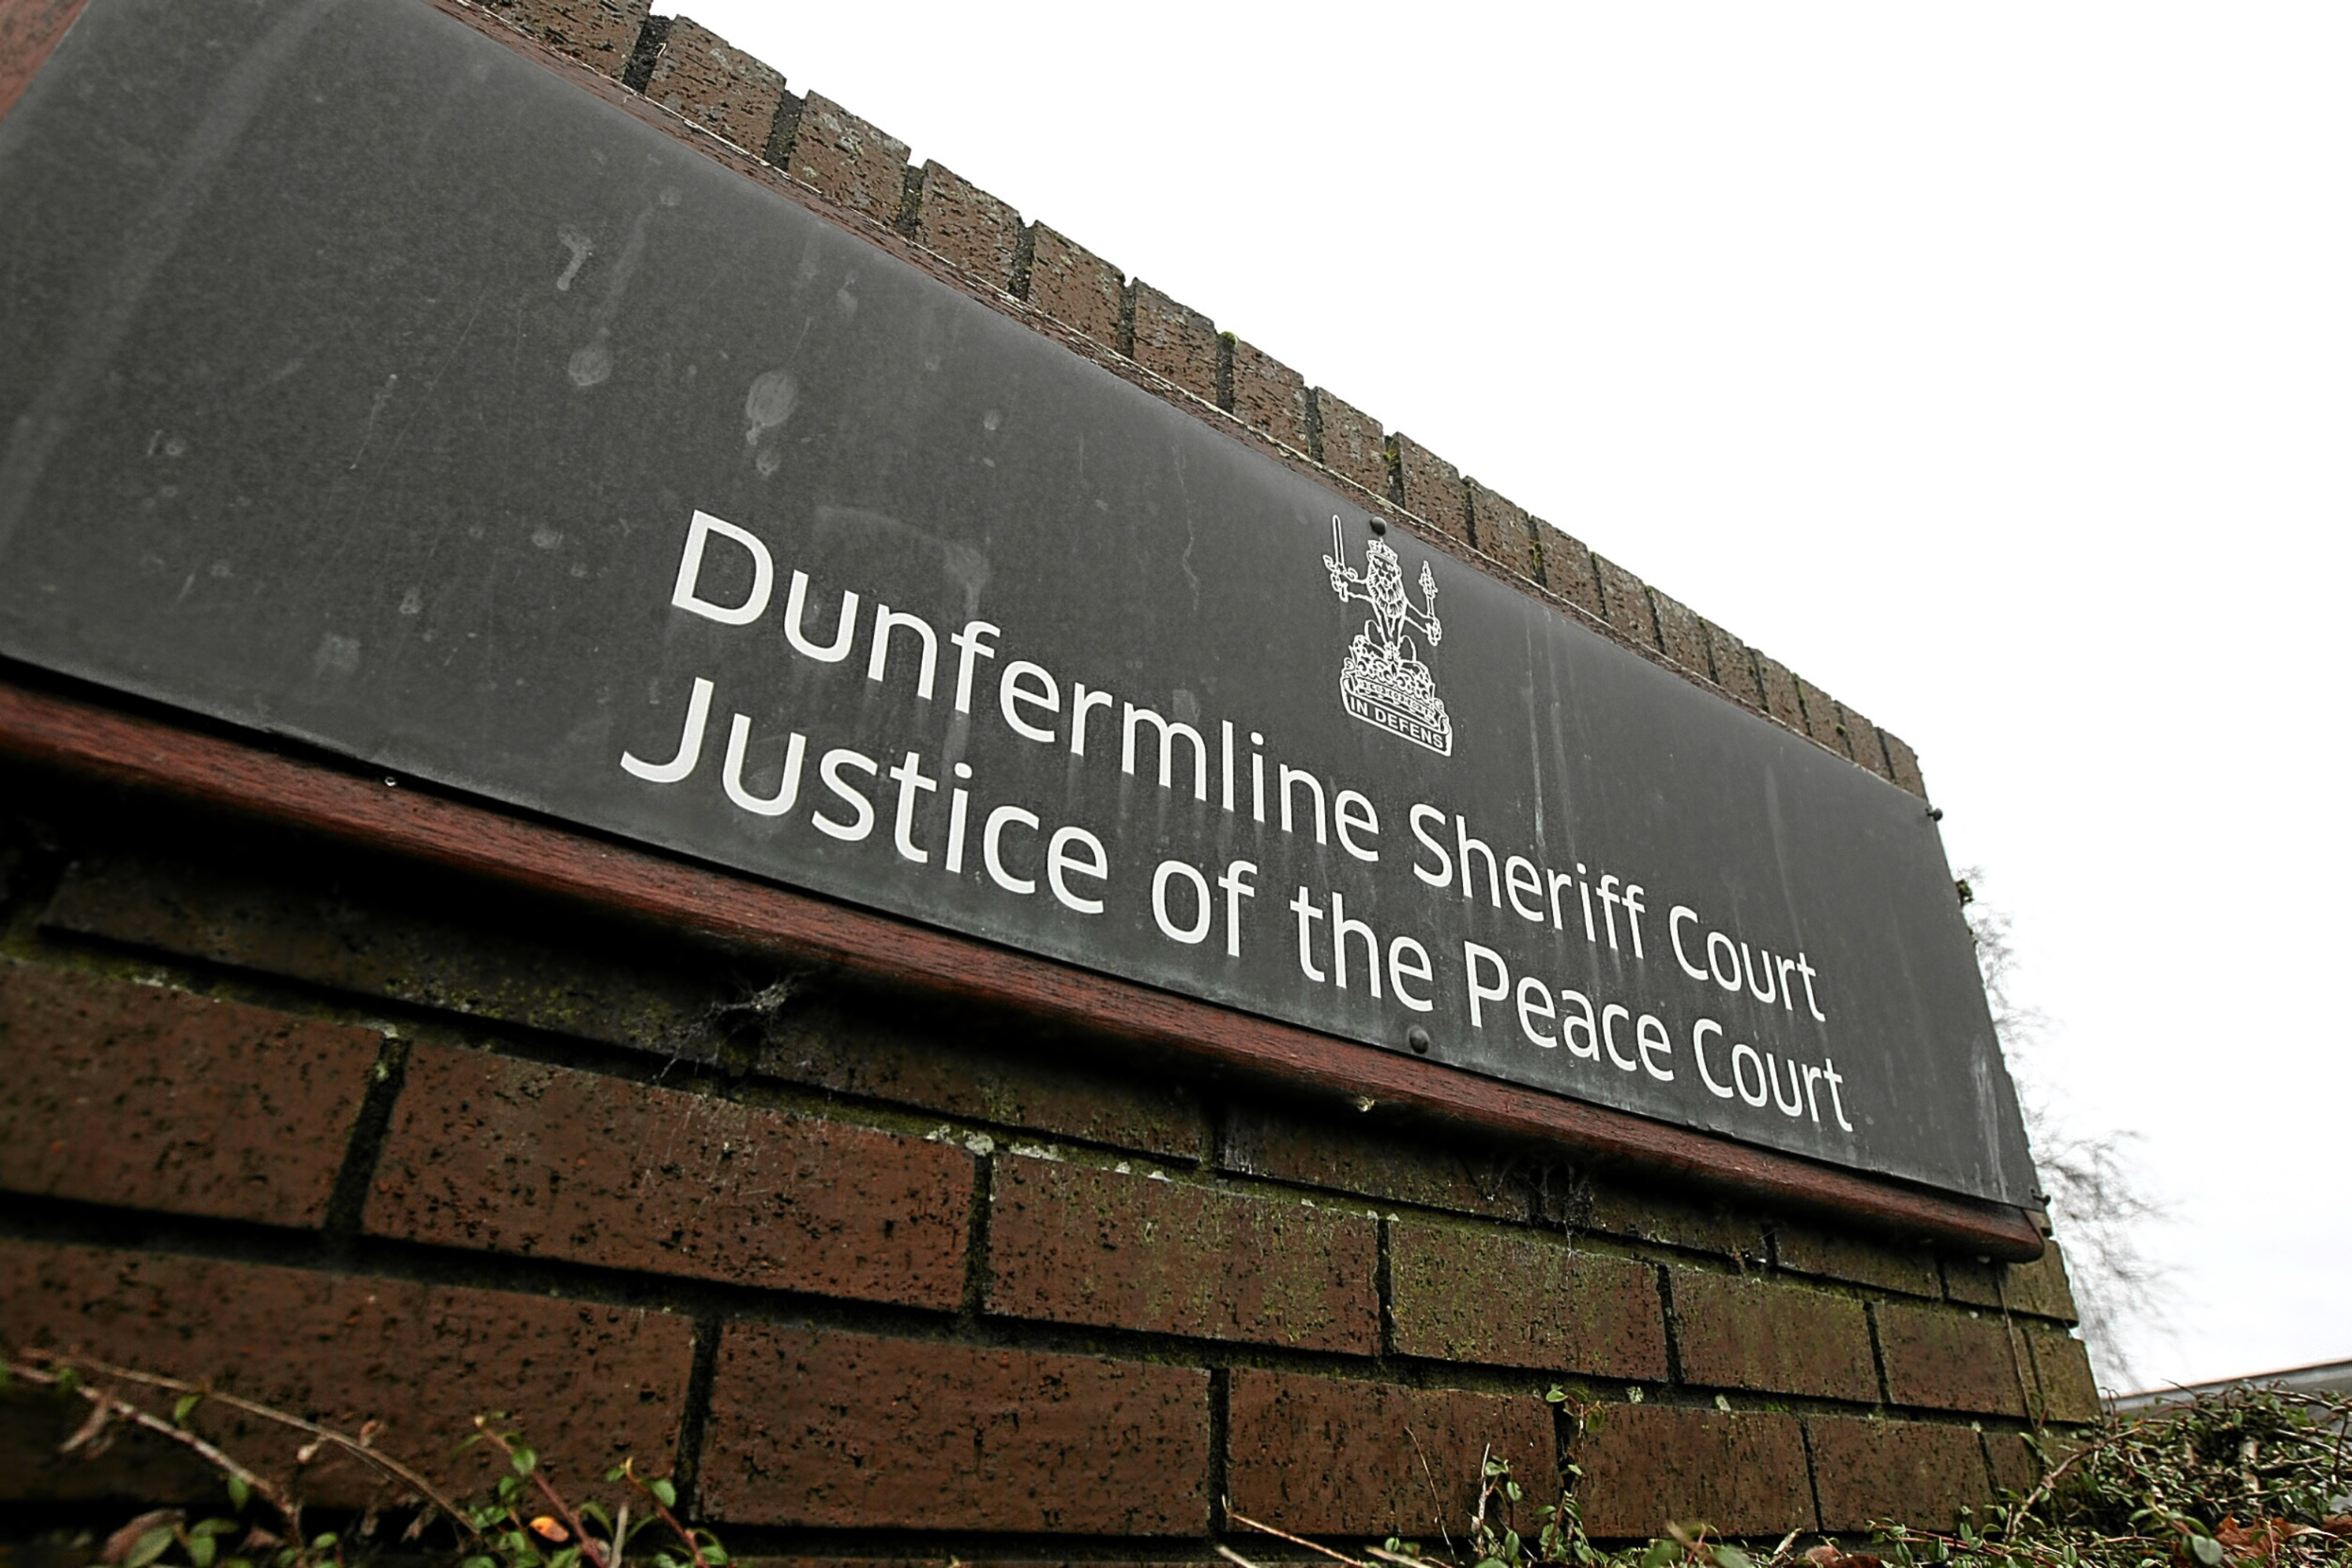 COURIER, DOUGIE NICOLSON, 02/01/16, NEWS. FOR FILES. Pic shows Dunfermline Sheriff Court today, Saturday 2nd January 2016.